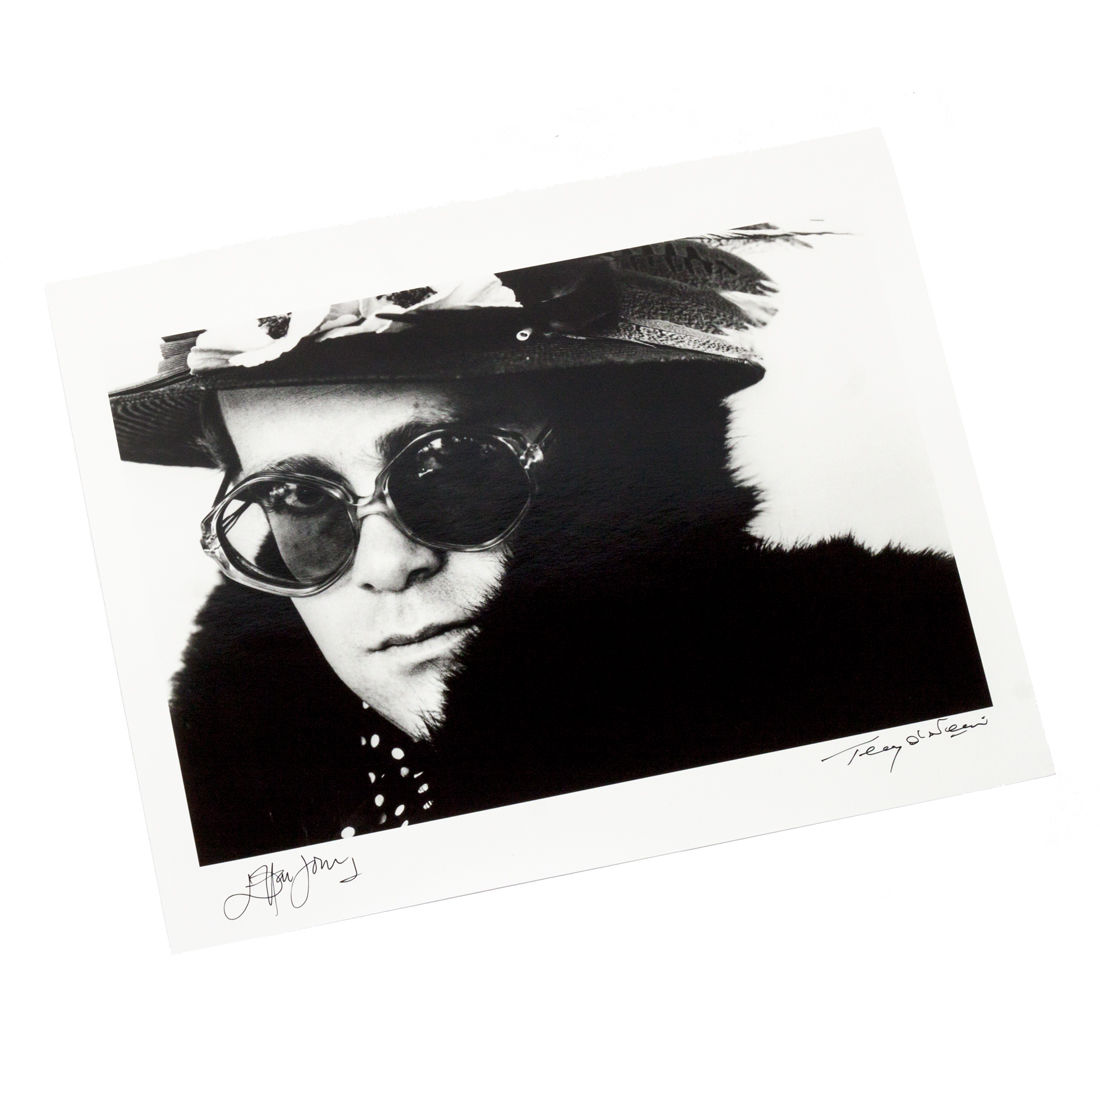 Elton John: Limited Edition Fine Art Print – Signed by Elton John & Terry O'Neill (16x20)